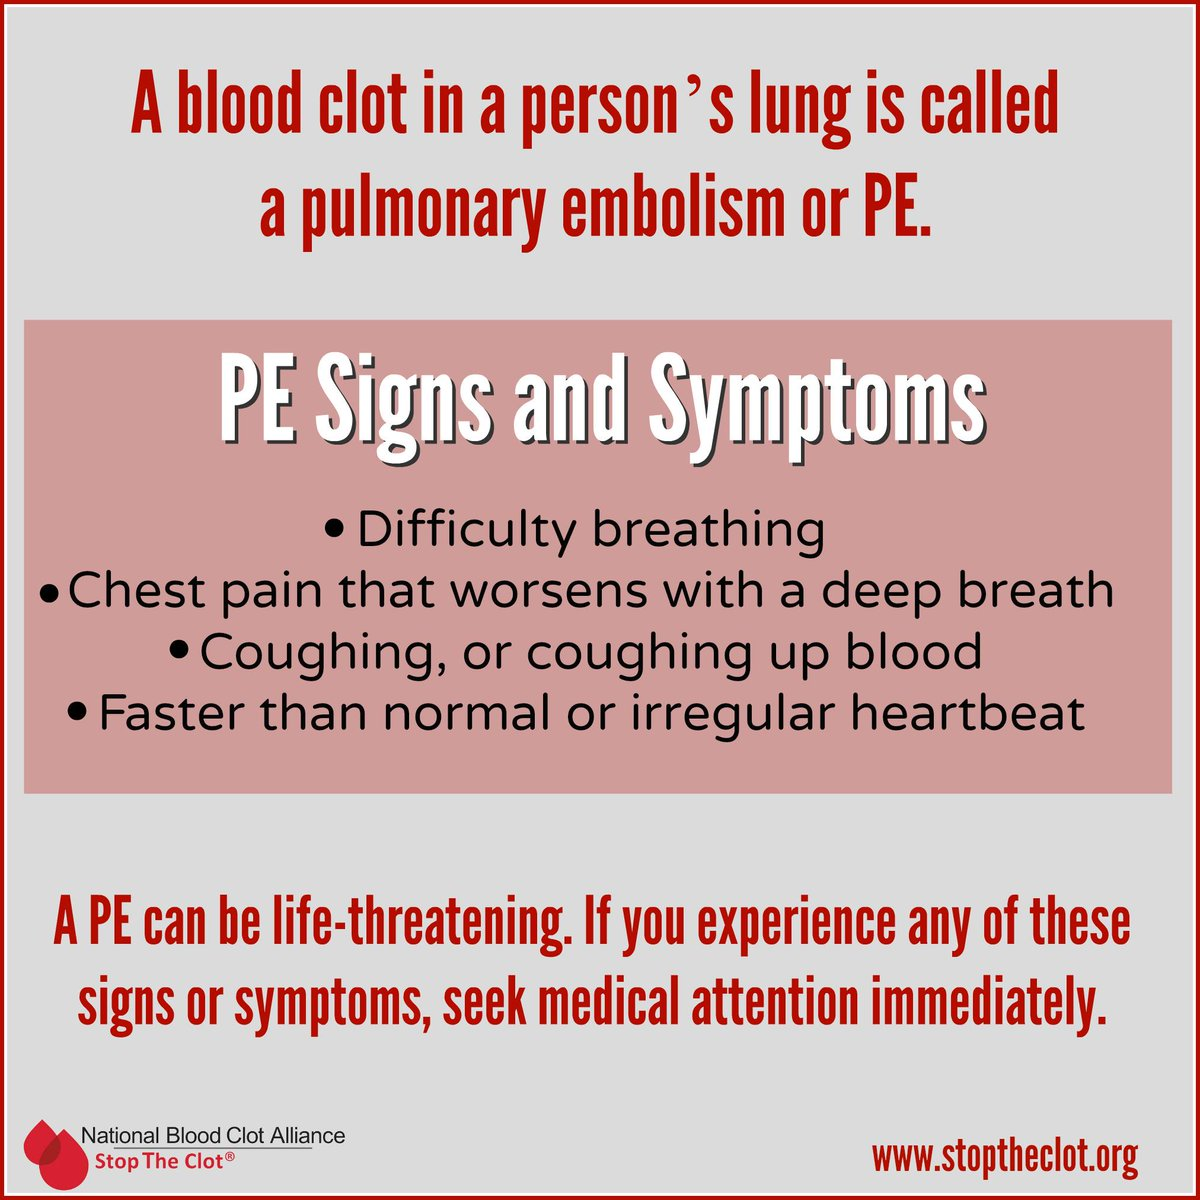 A Pulmonary Embolism PE Which Can Be Deadly Recognize The Symptoms Of Blood Clots In Lungs Bitly 1TQ36nz Pictwitter Lu2oRYjcfM